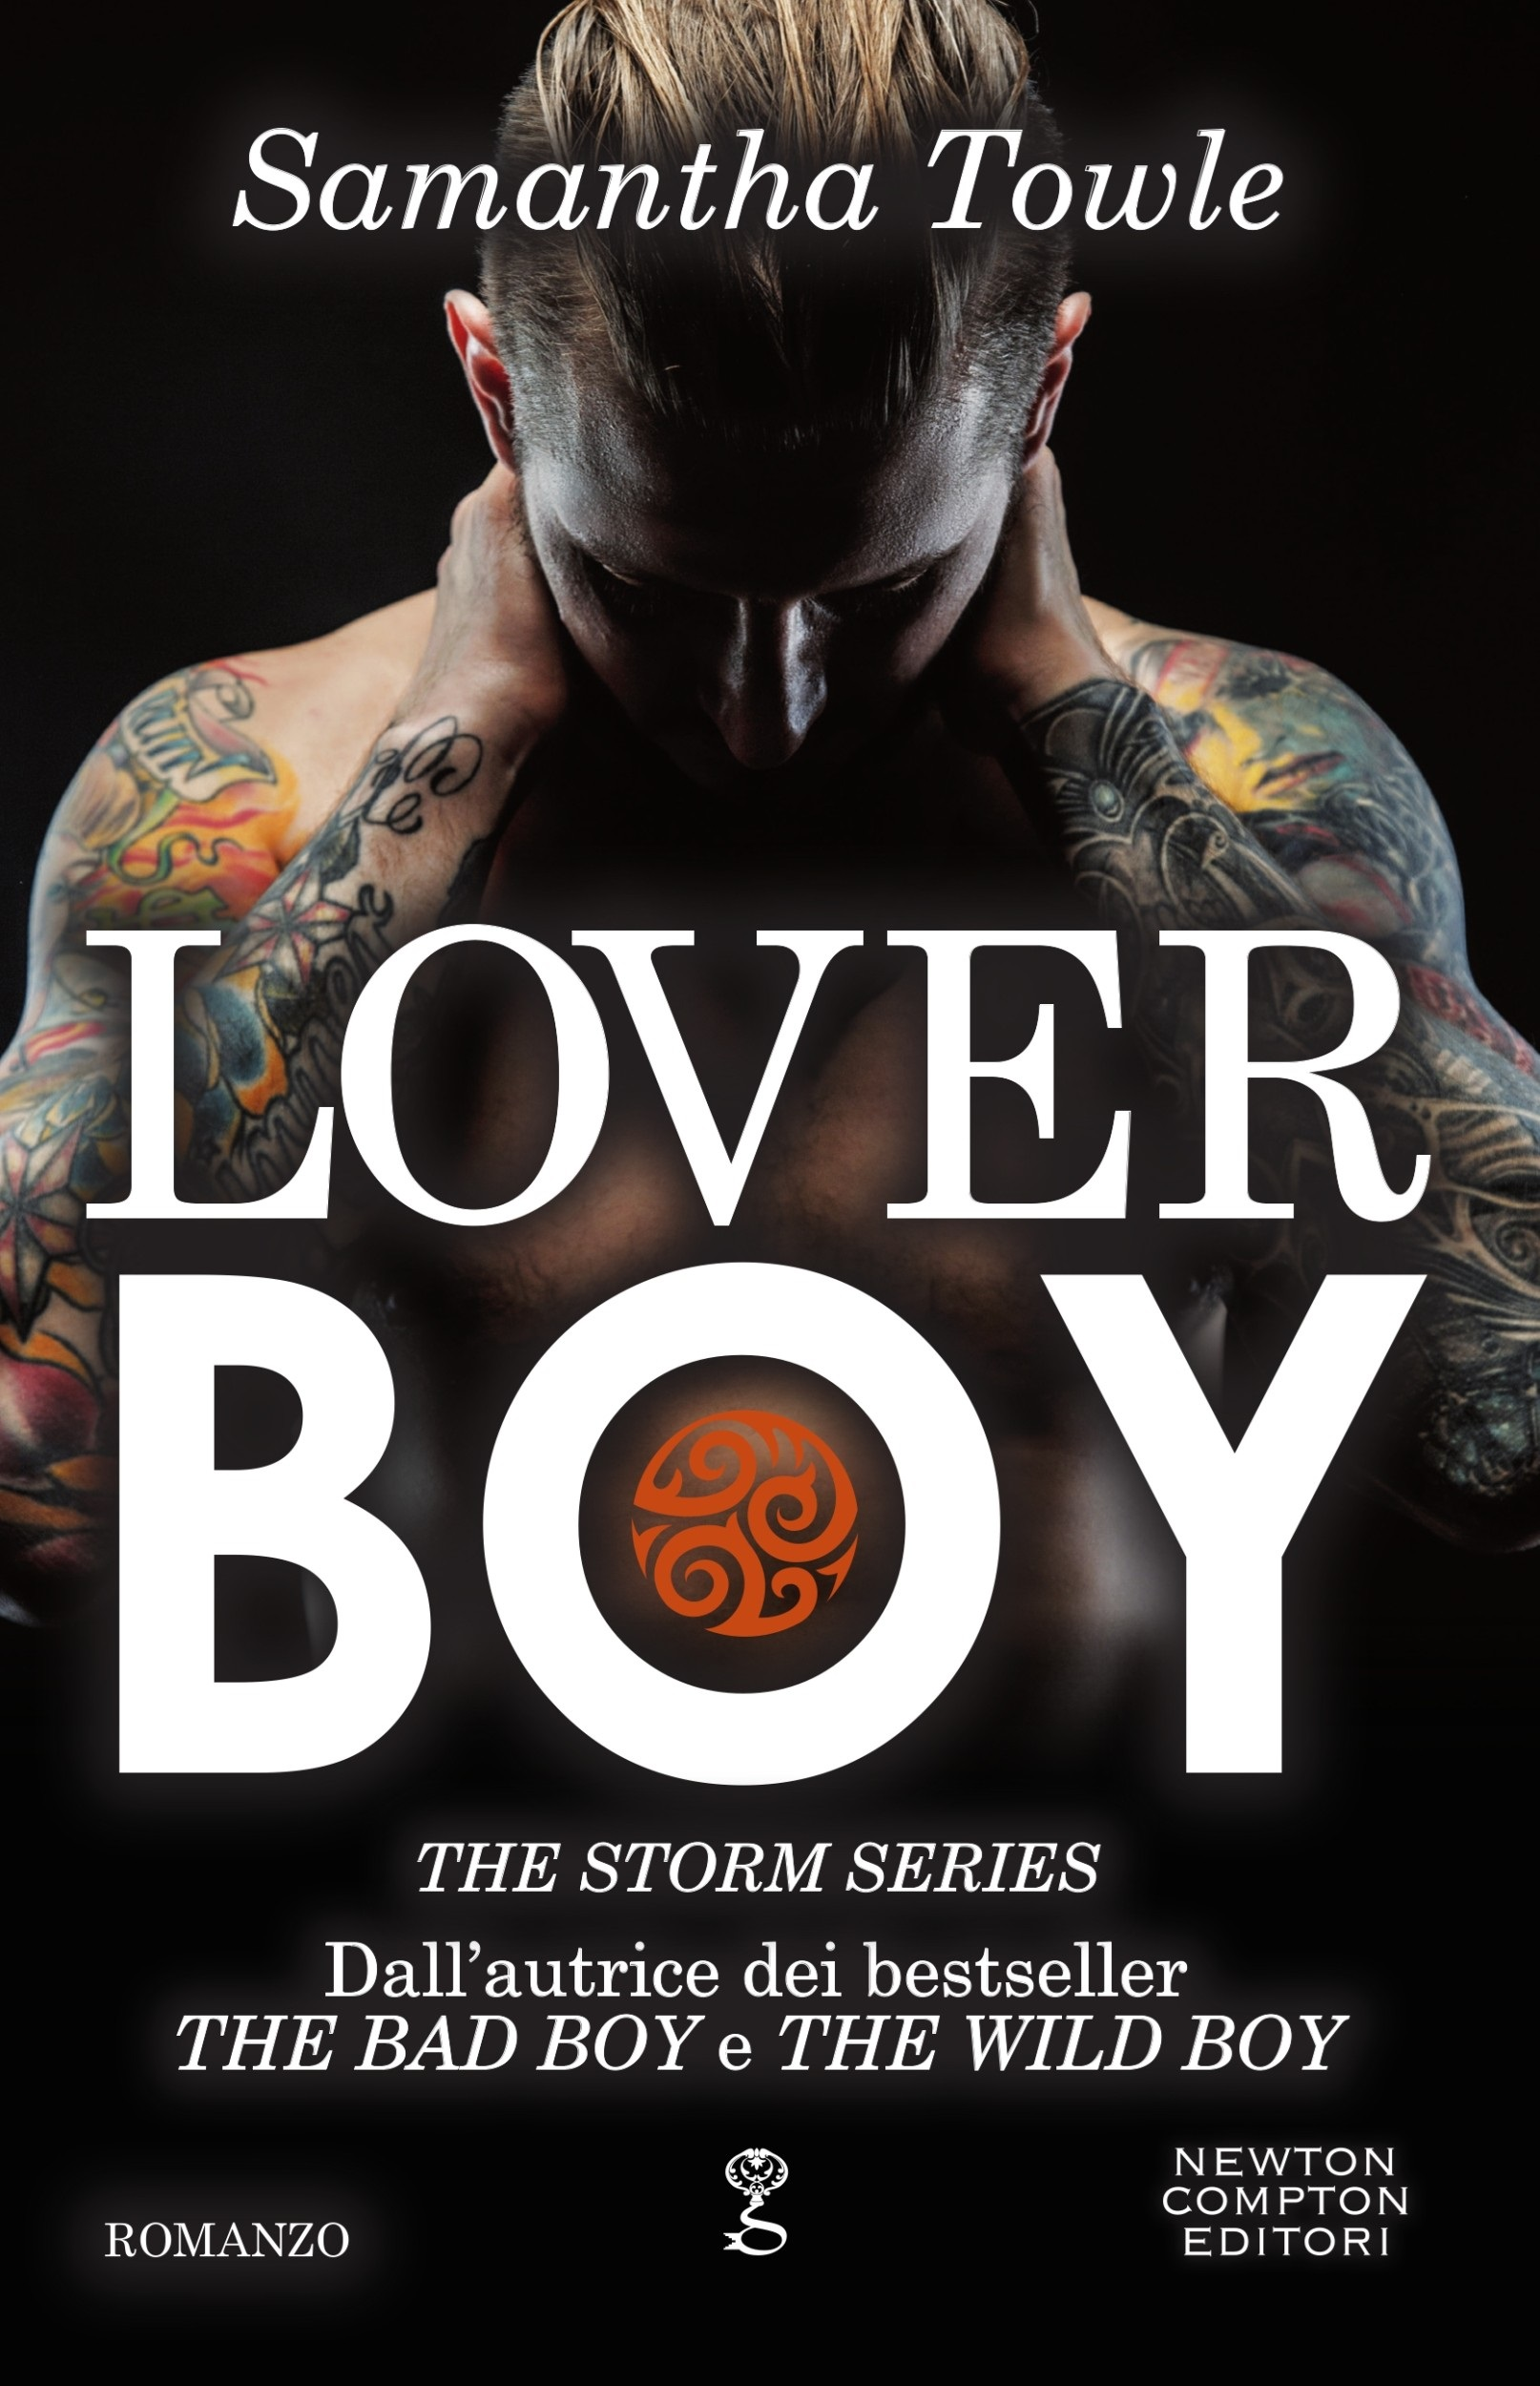 Lover boy 1st Edition Pdf Free Download